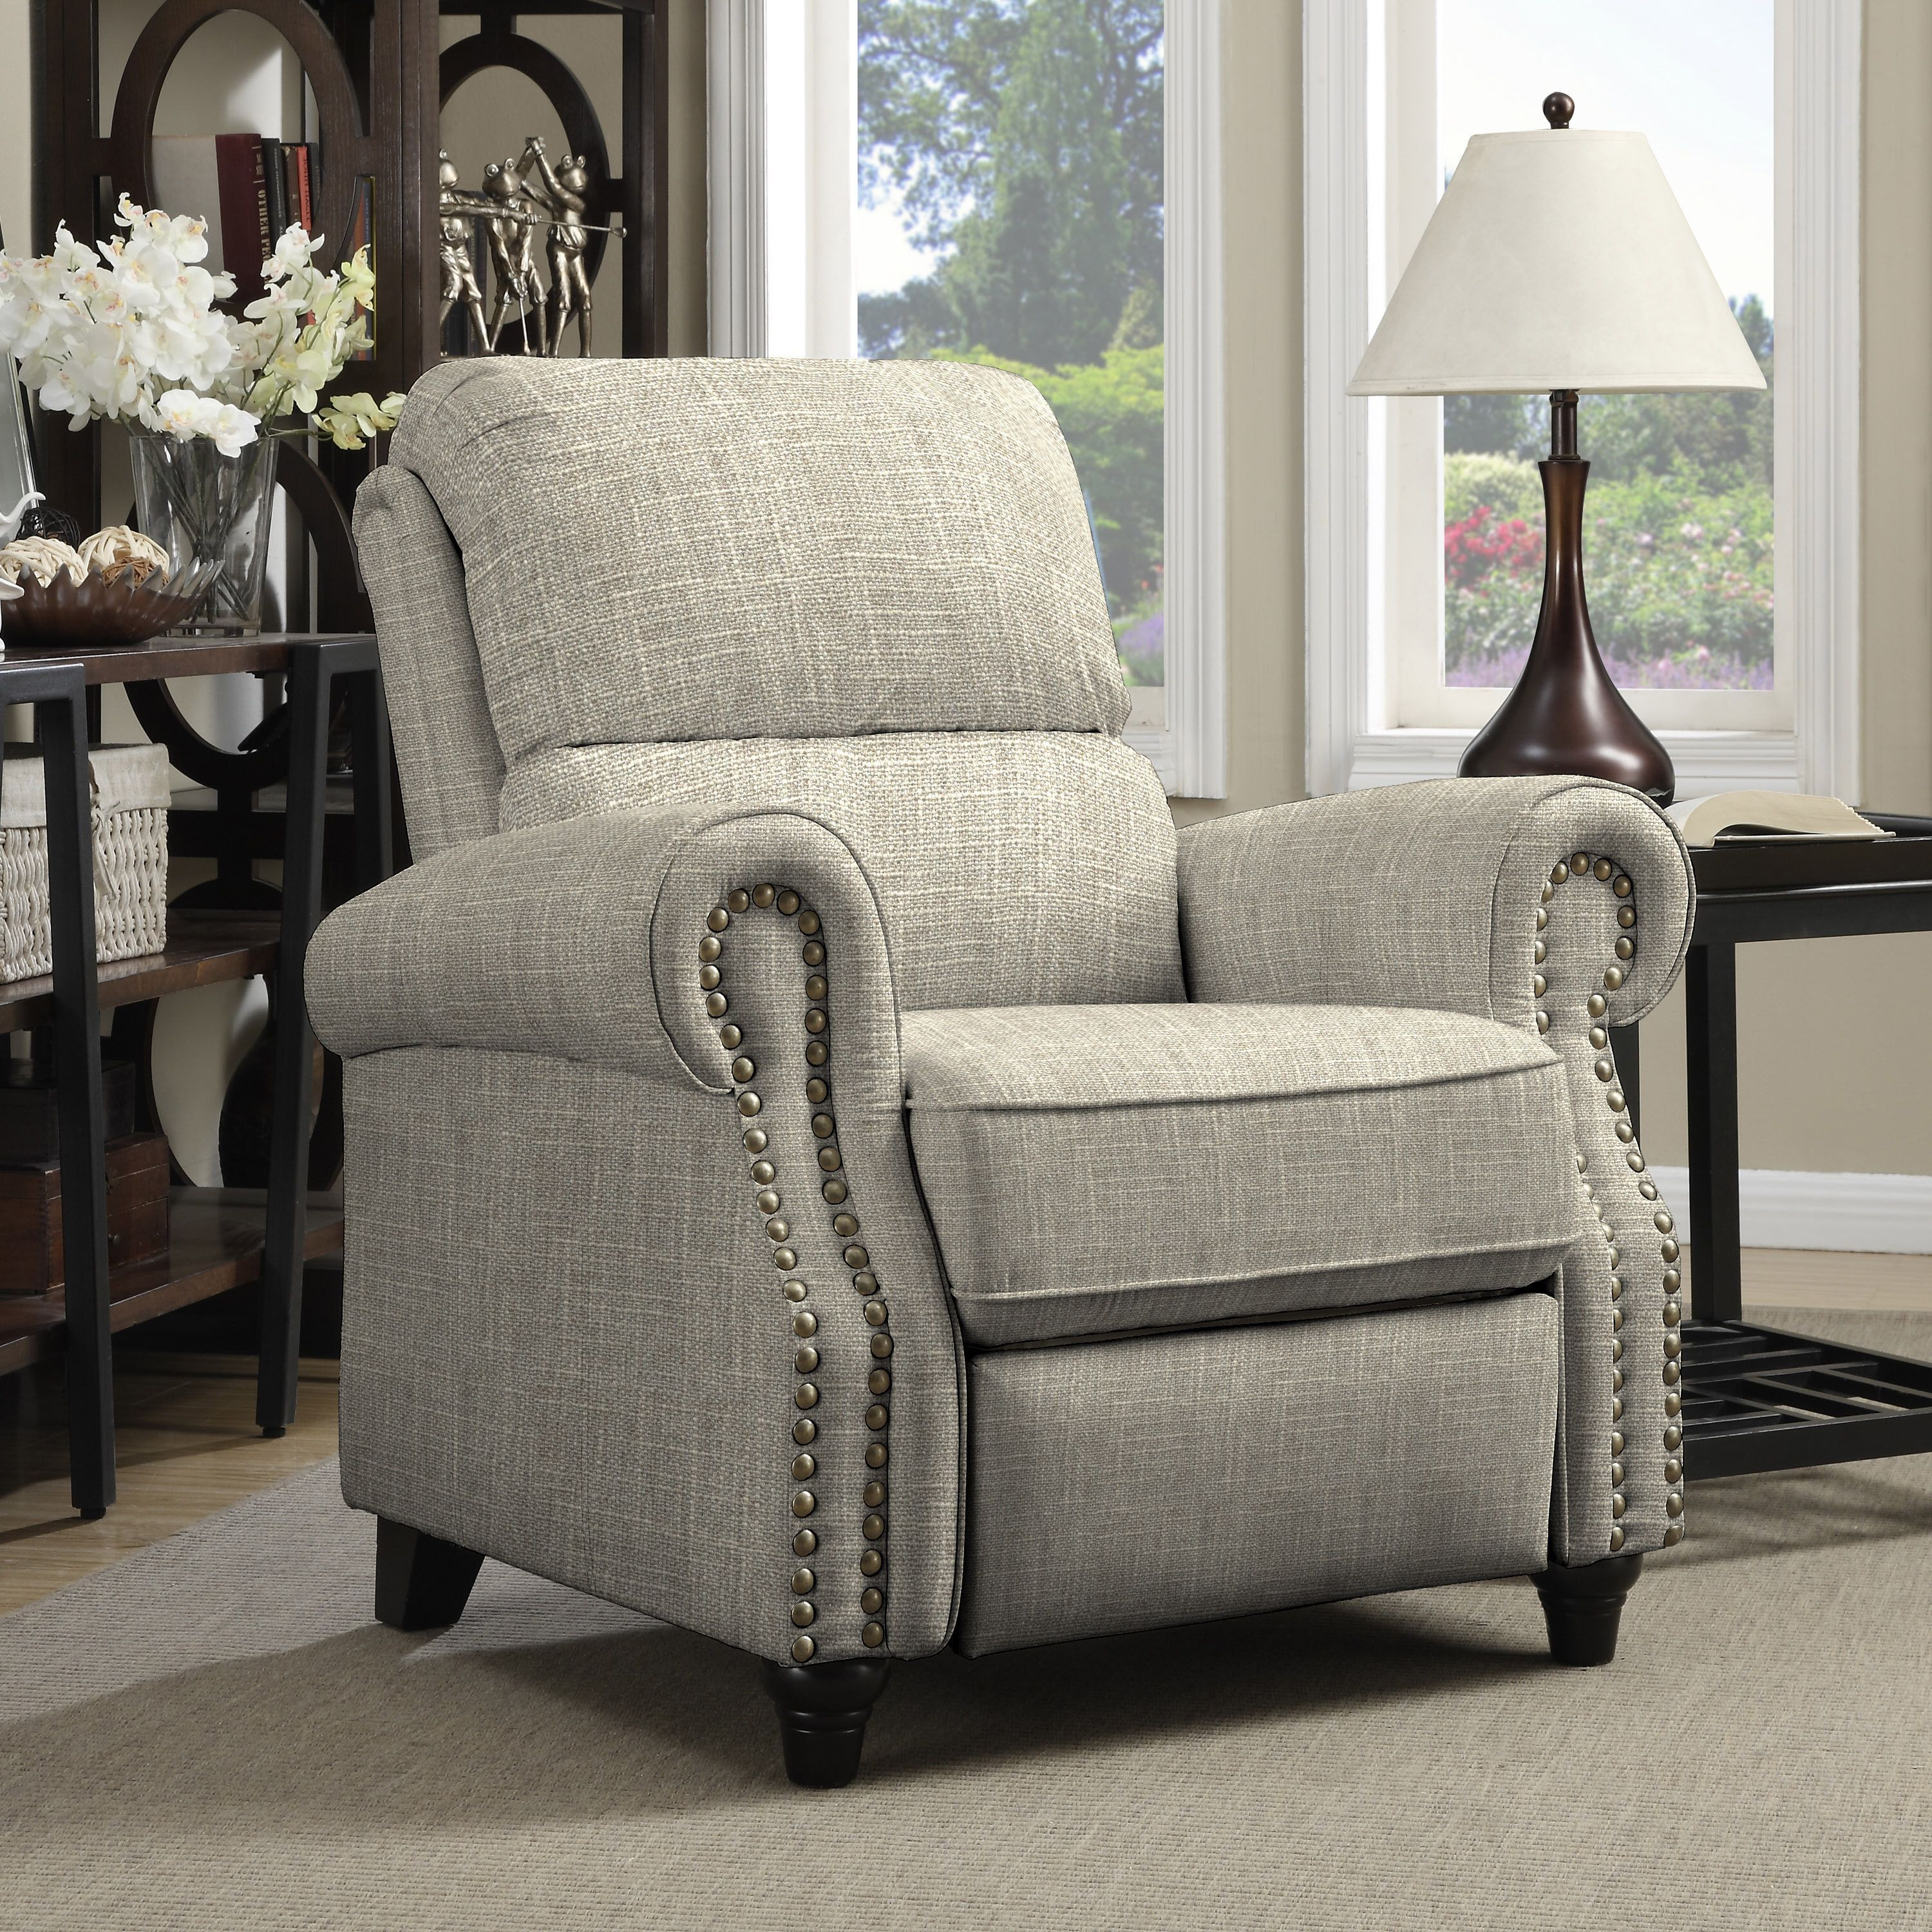 Wall Hugger Recliner Chair Posture Australia The Prolounger Is Covered In A Linen Like Barley Tan Fabric Sit Back And Relax This Rounded Arm Reclining Accented With